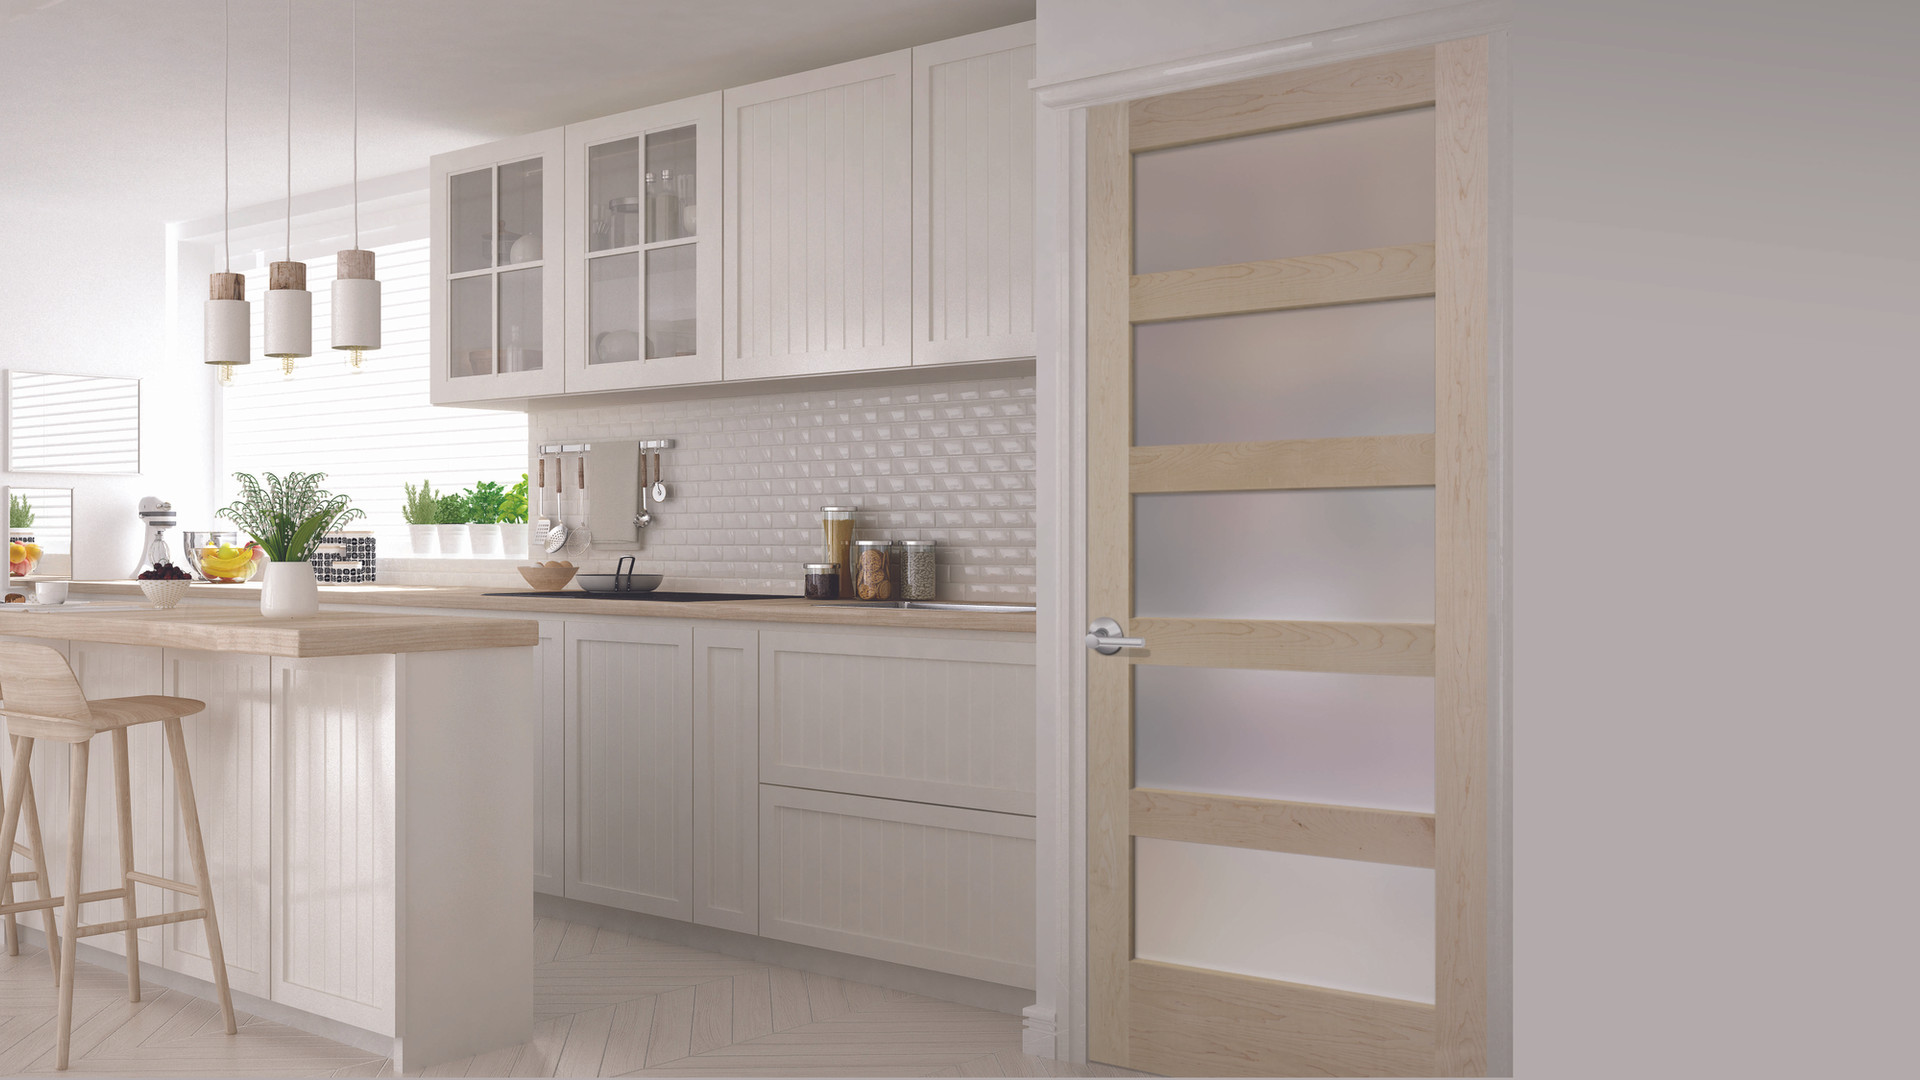 WOOD-C55-Maple-wGlazing-Frosted-Kitchen-